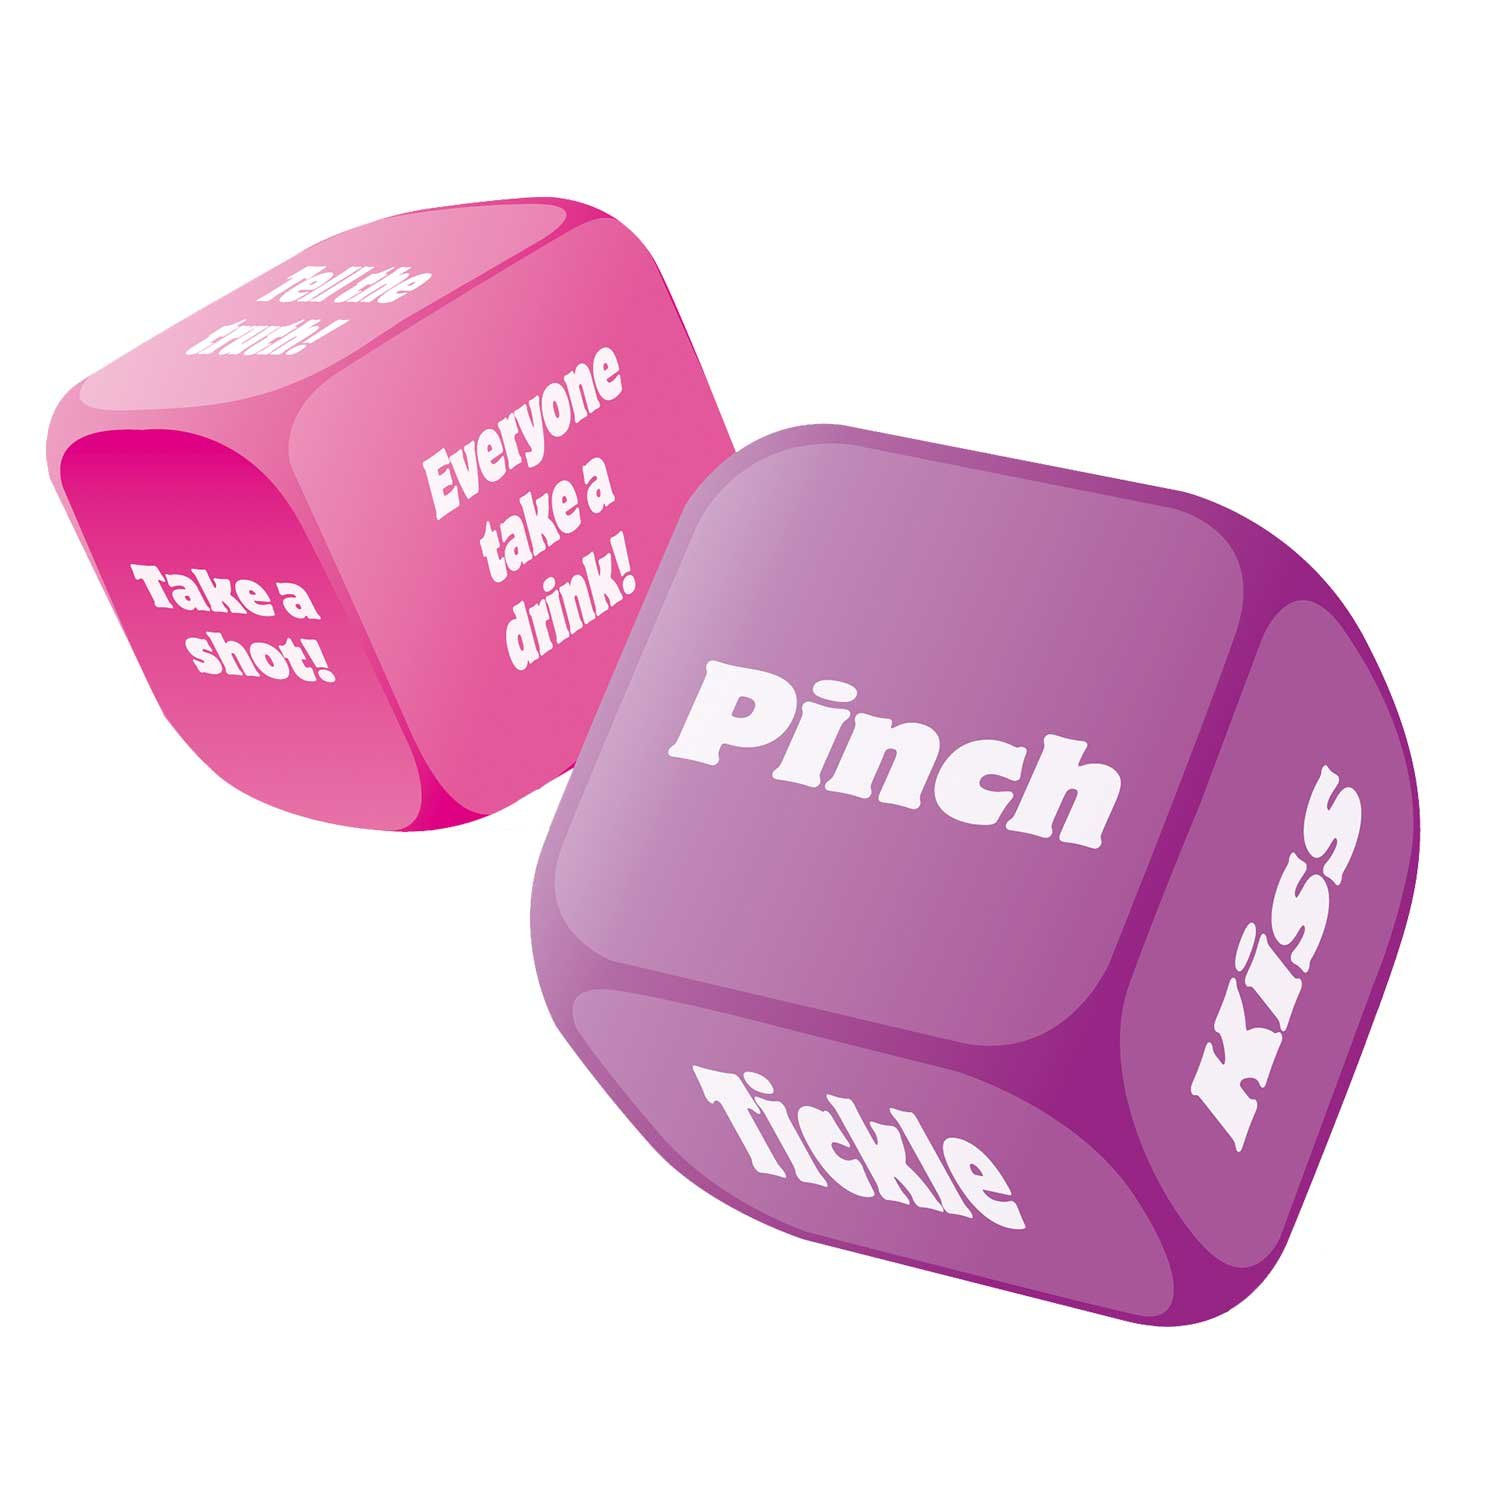 amscan 9900546 Hen Party Dare Dice Game